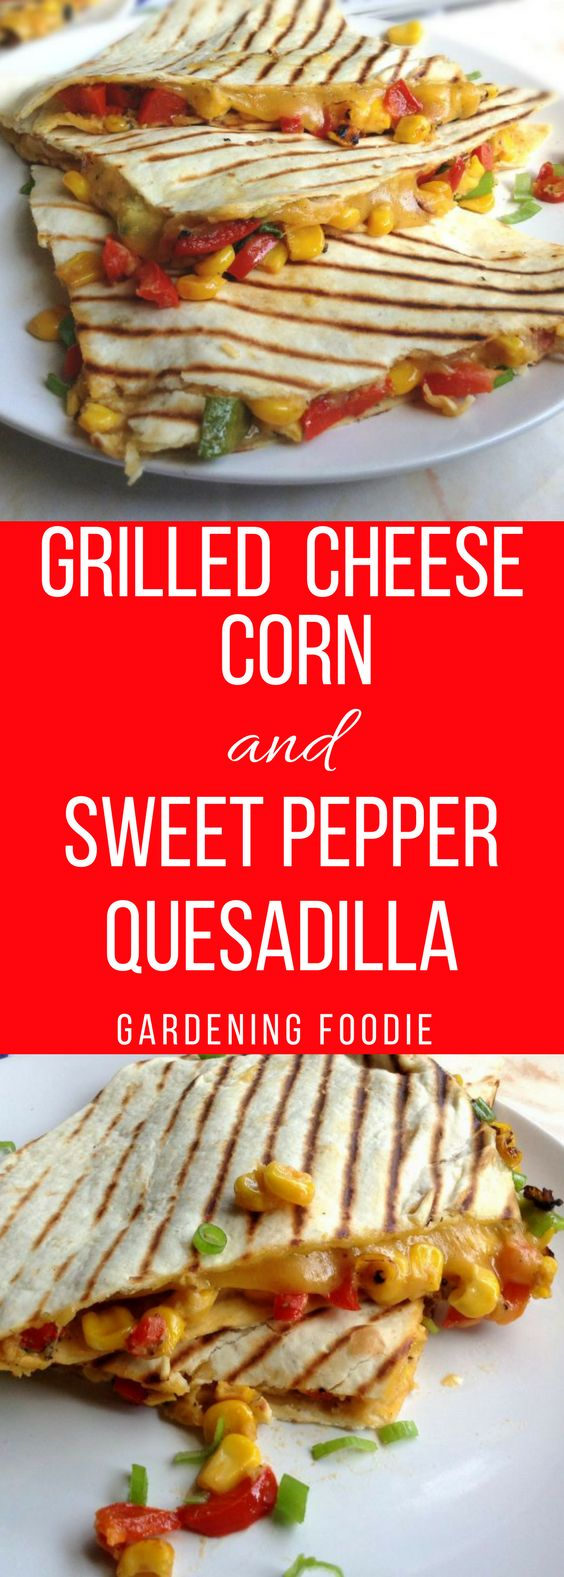 Grilled Cheese, Corn and Sweet Pepper Quesadilla ⋆ Gardening Foodie